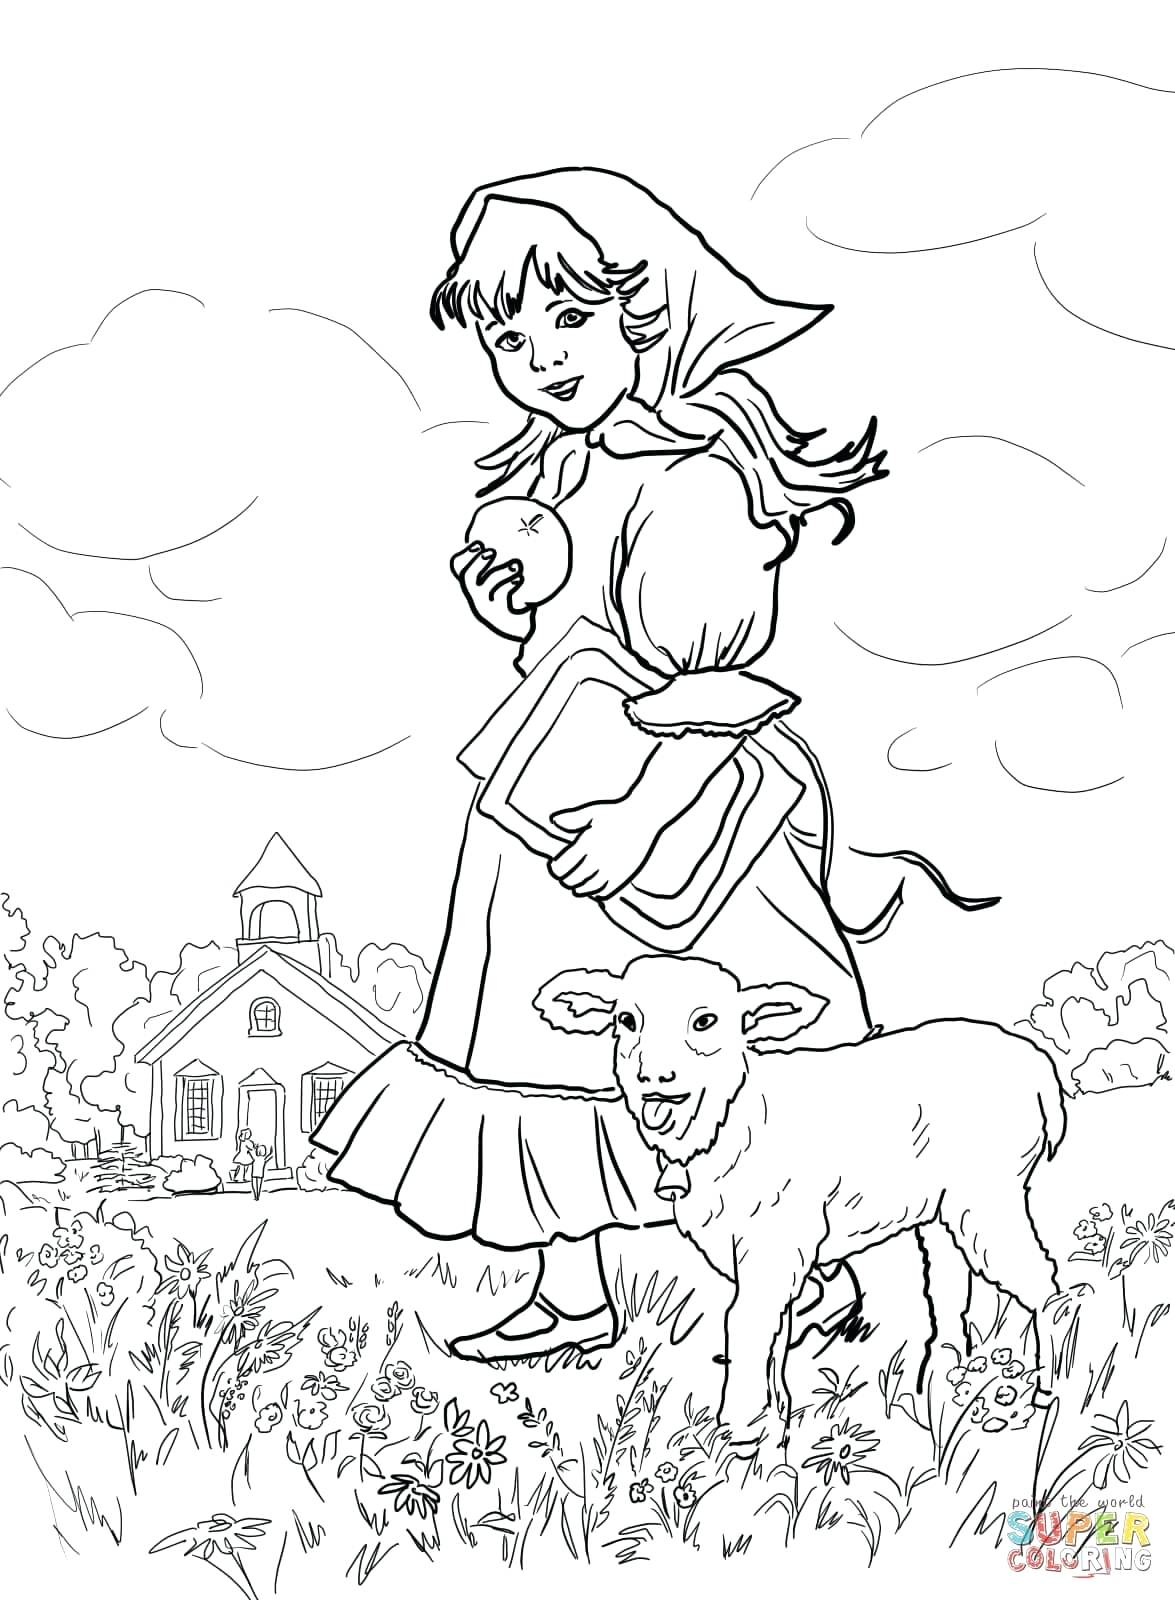 The Best Free Rhyme Coloring Page Images Download From